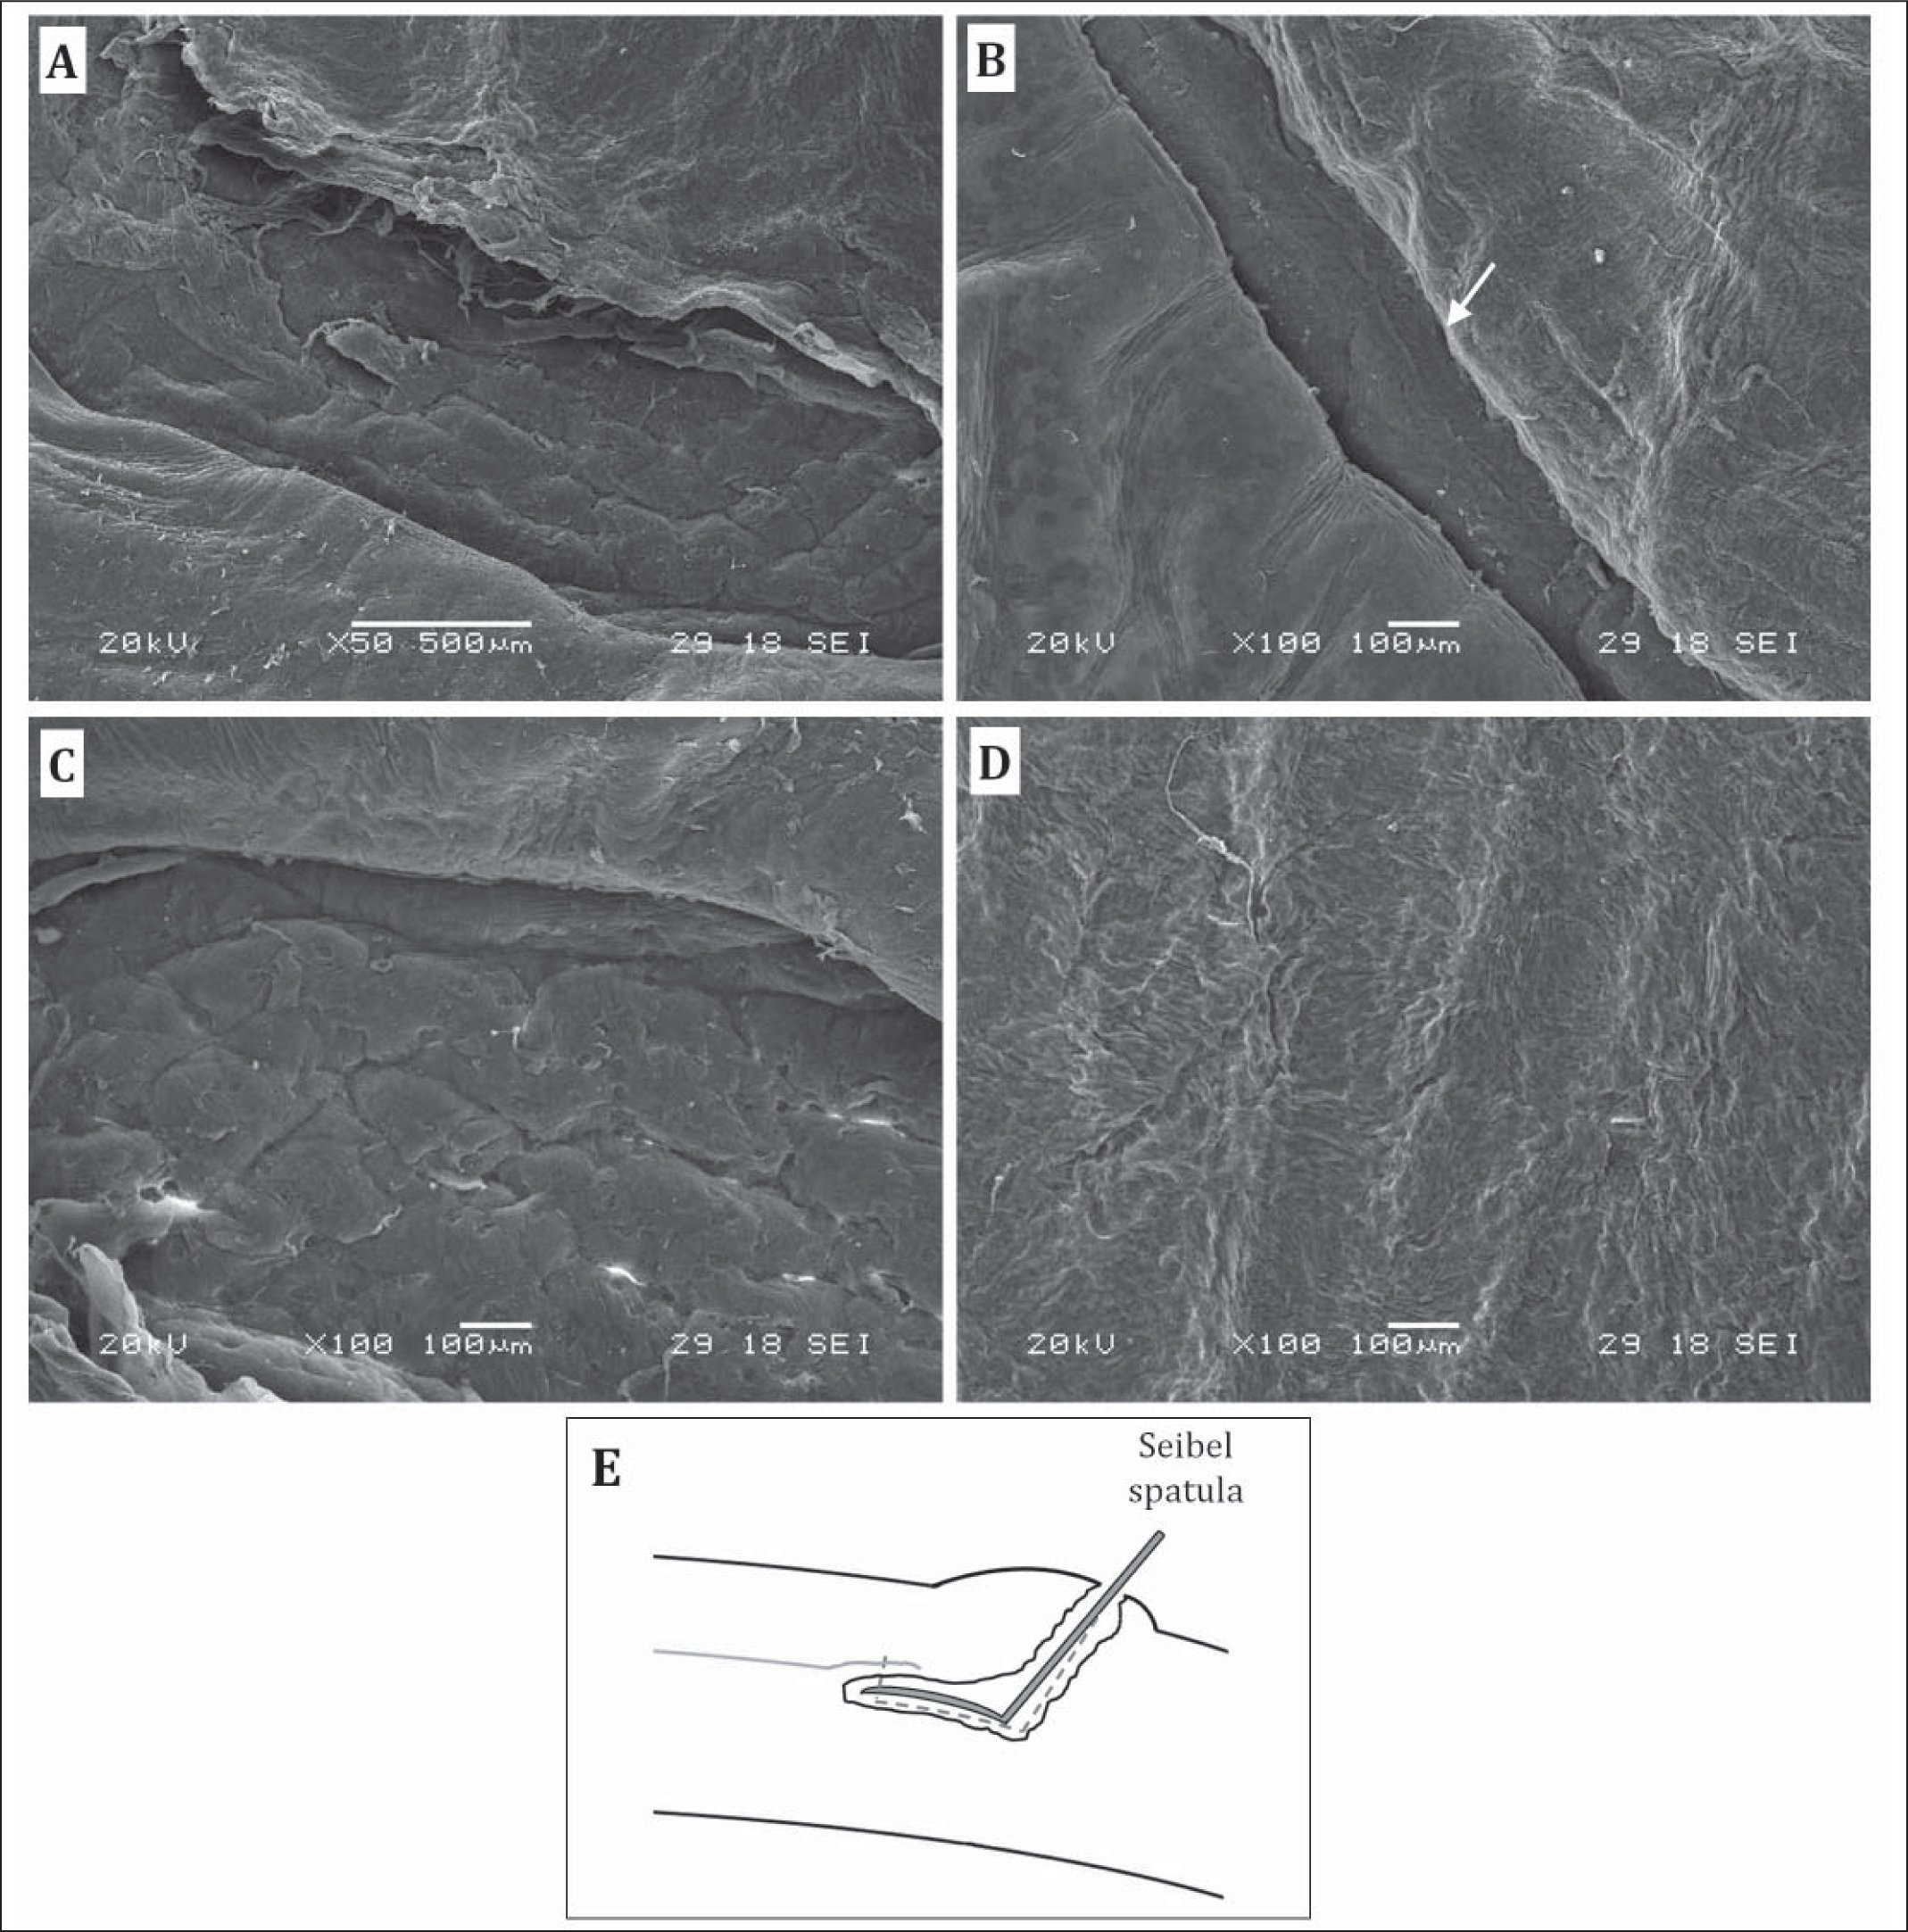 Scanning electron microscopy (SEM) images of the corneal stromal bed treated with pattern B. (A) SEM showing the lamellar damage under the edge of the cap cut created by the Seibel spatula. (B) The area in the opposite quadrant of that shown in (A). Arrow indicates an elevation of the cap cut from the lamellar ring. (C) The side cut and surface of lamellar ring. (D) The central corneal flap bed. (E) Illustration depicting a Seibel spatula, inserted into the lamellar ring incision, penetrates and damages the lamellae under the edge of the cap cut as shown in SEM image (A), due to the difficulty in accessing the correct plane (the cap cut), as the lamellar ring is placed posterior to it.